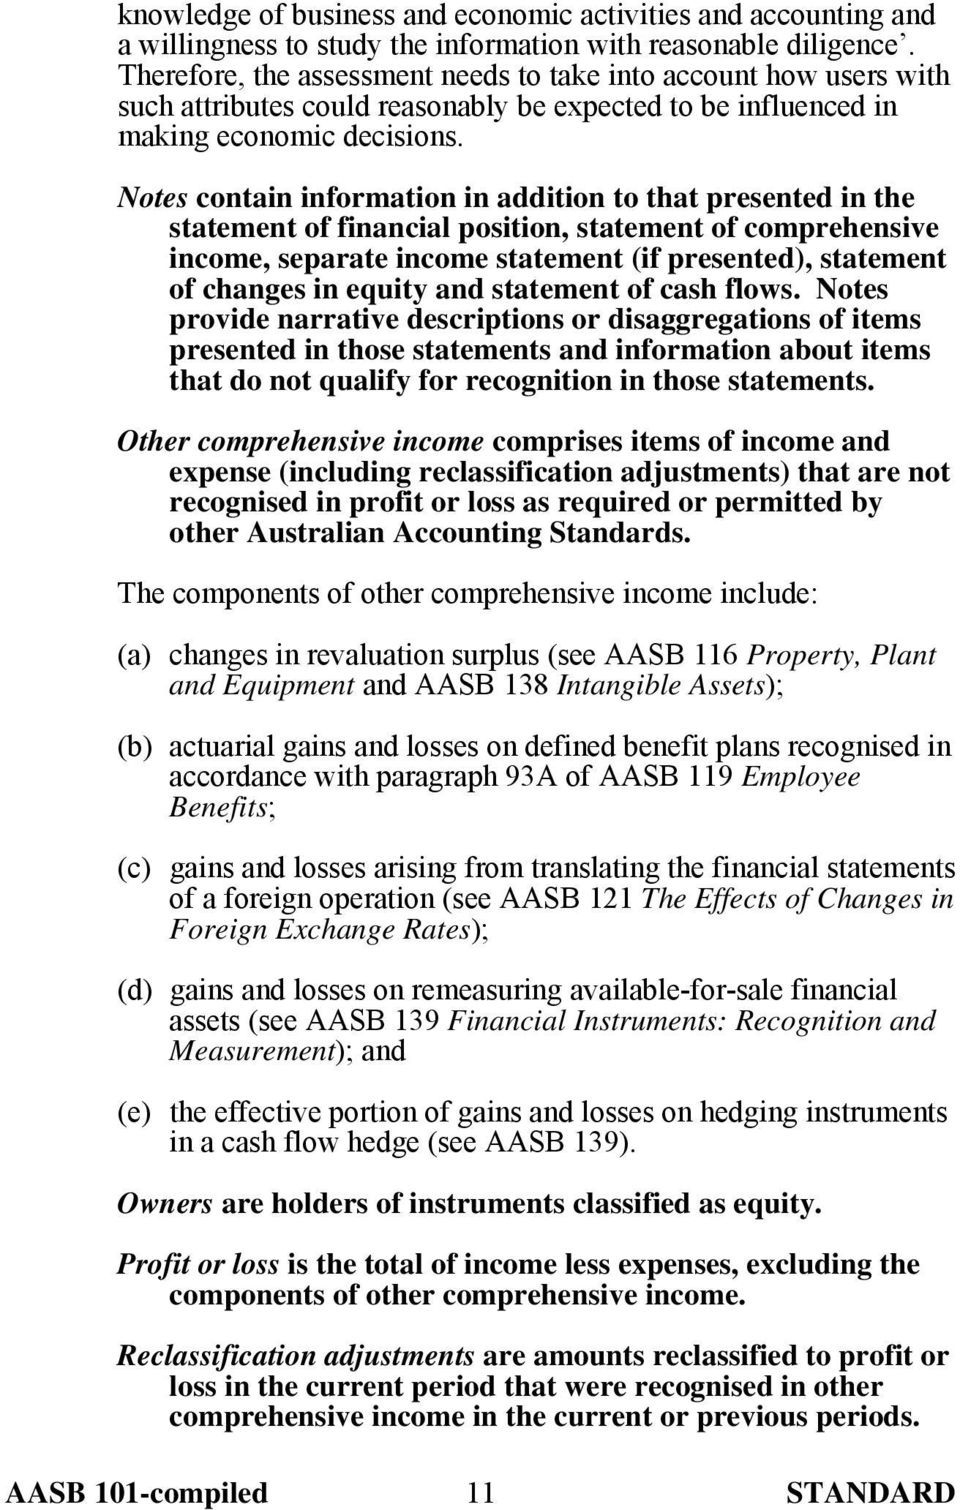 Notes contain information in addition to that presented in the statement of financial position, statement of comprehensive income, separate income statement (if presented), statement of changes in